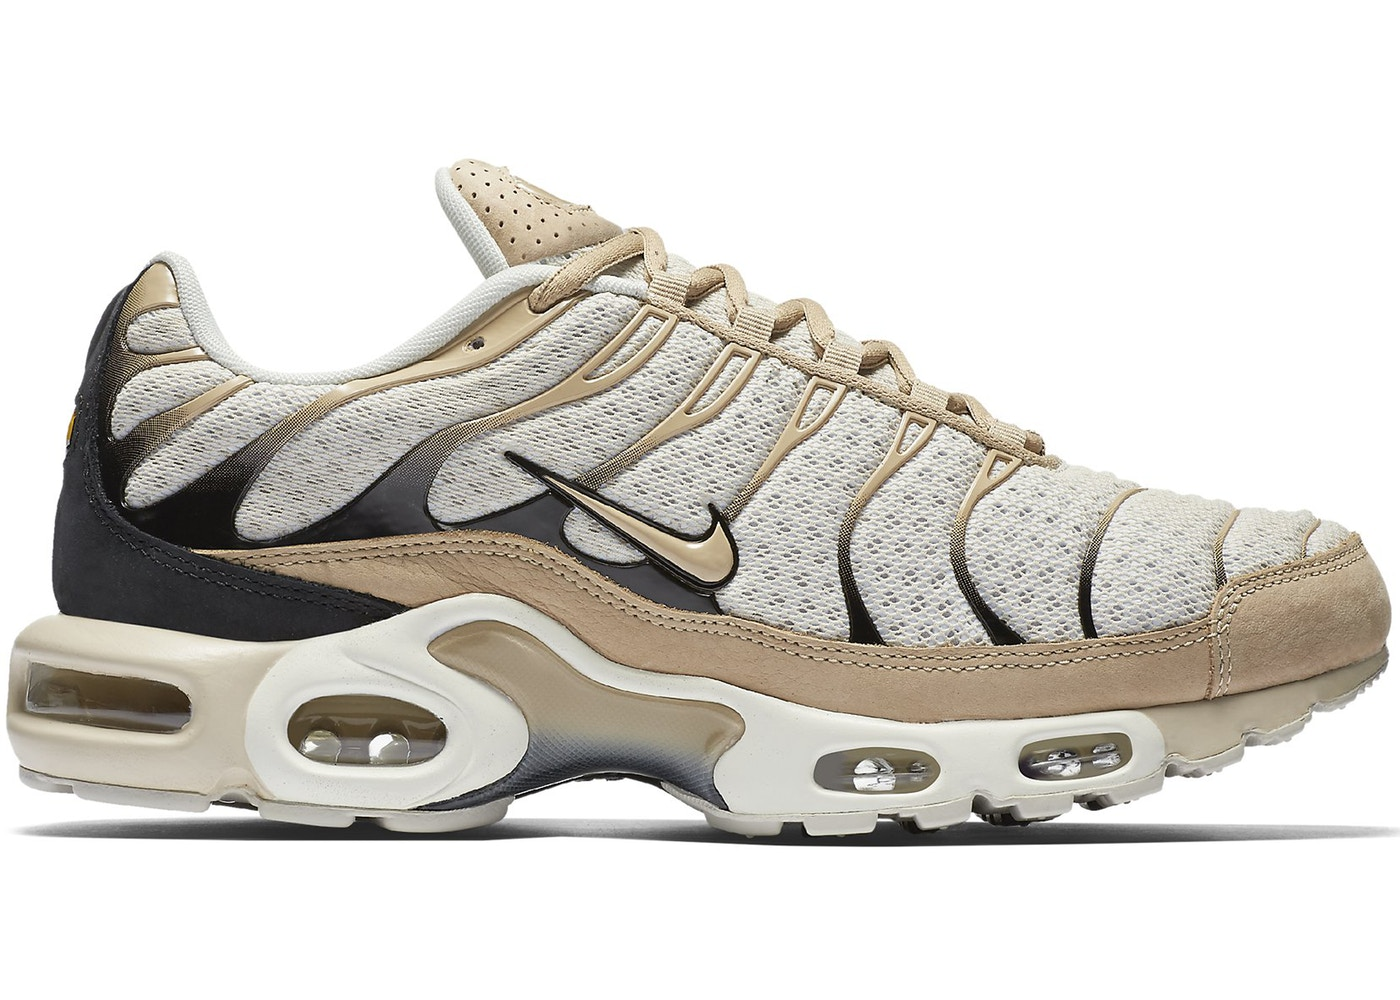 8fa86d86fe Air Max Plus Light Bone - 898018-002